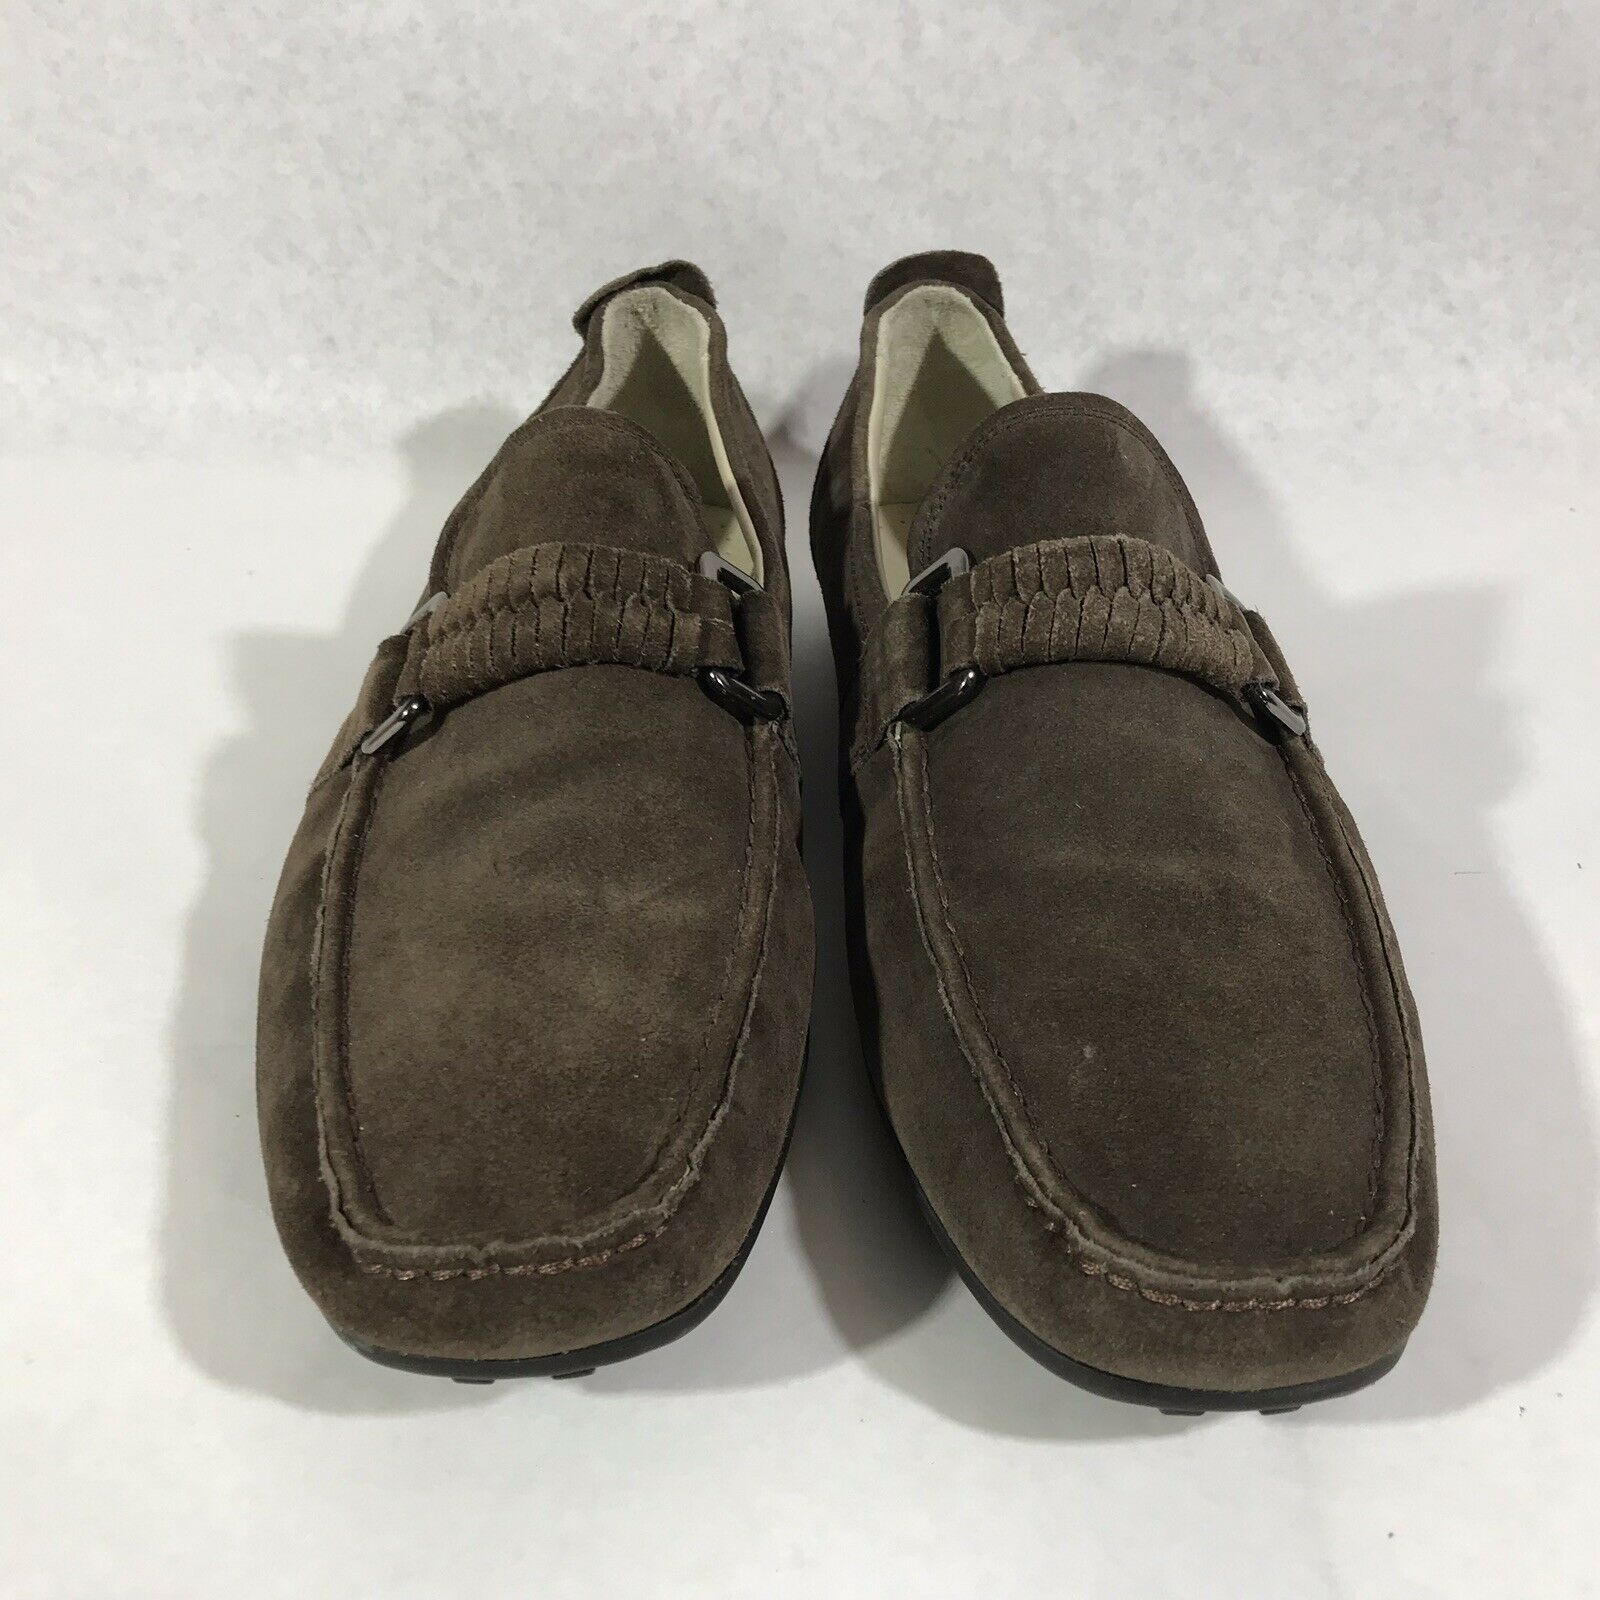 Kenneth Cole Turbo Jet 9.5 Leather Loafers - image 2